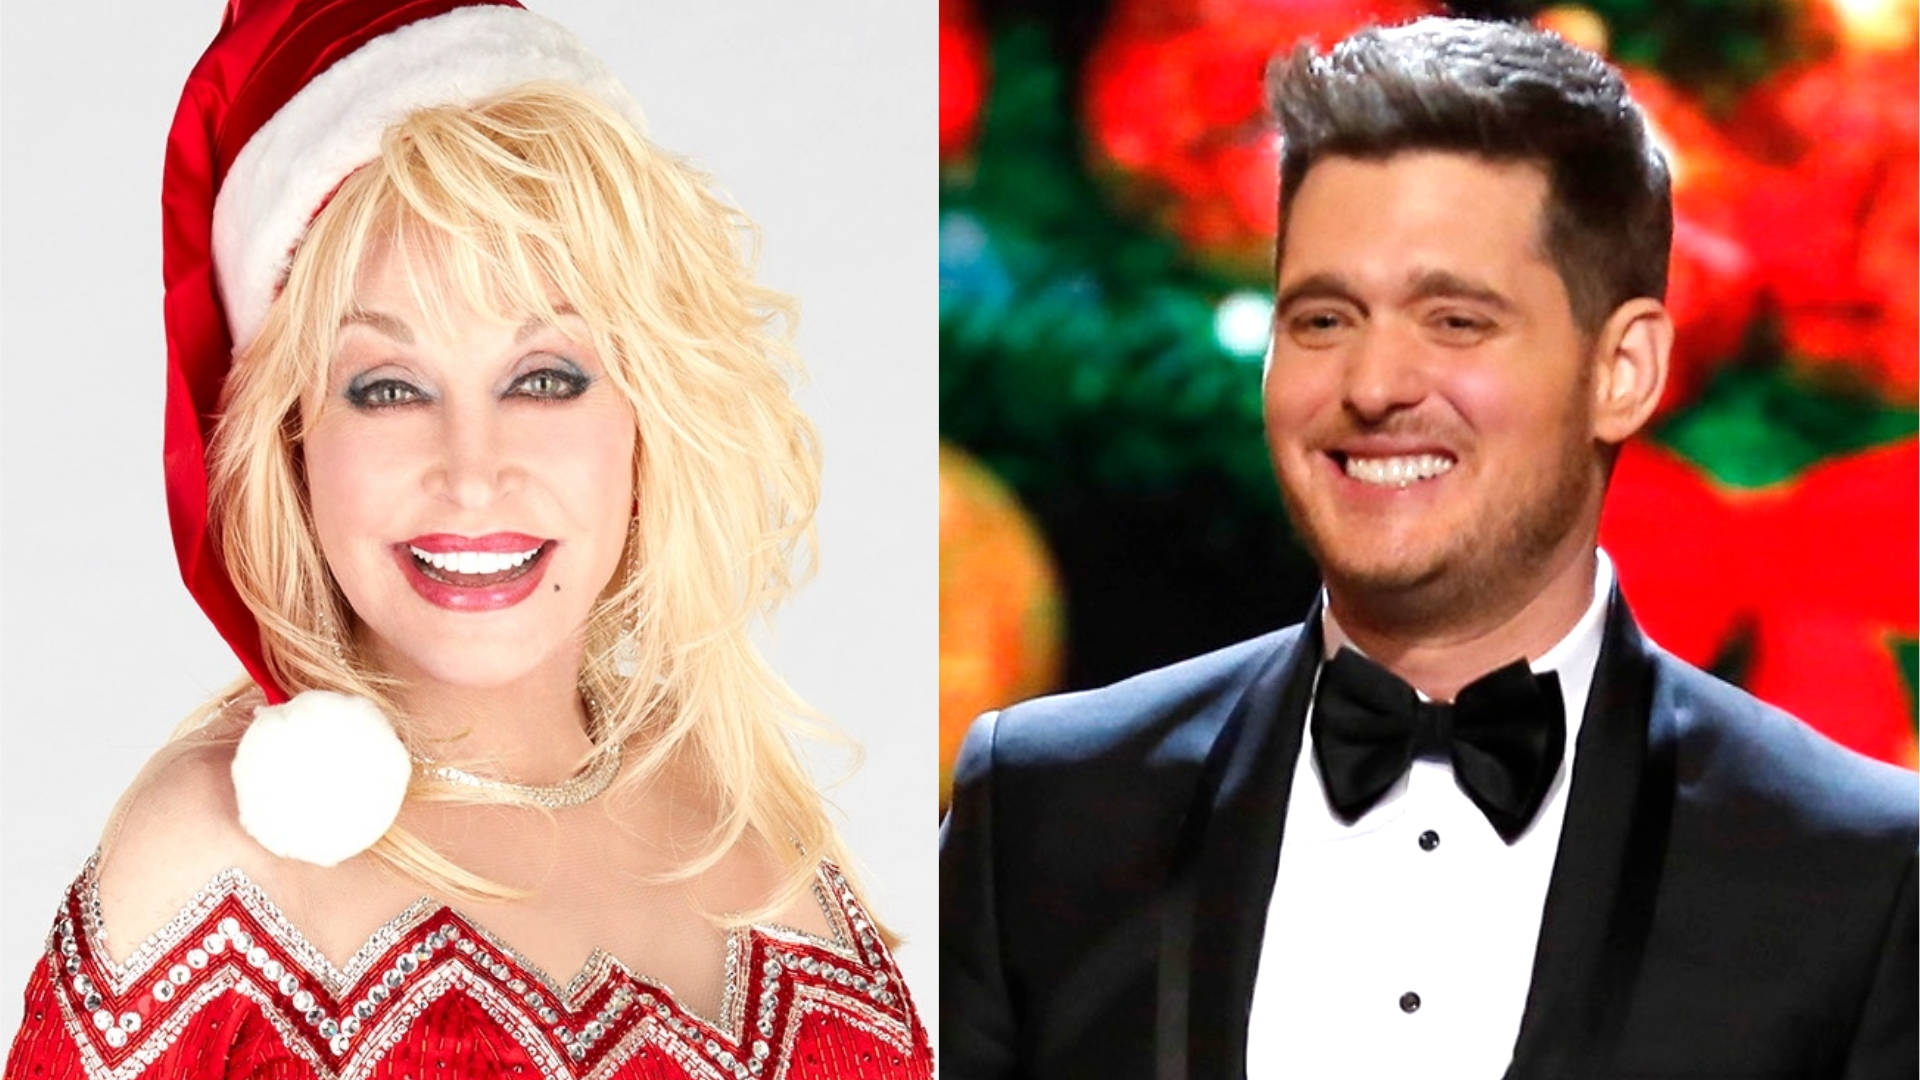 Michael Buble New Christmas Album 2020 Dolly Parton and Michael Bublé have recorded a new Christmas song